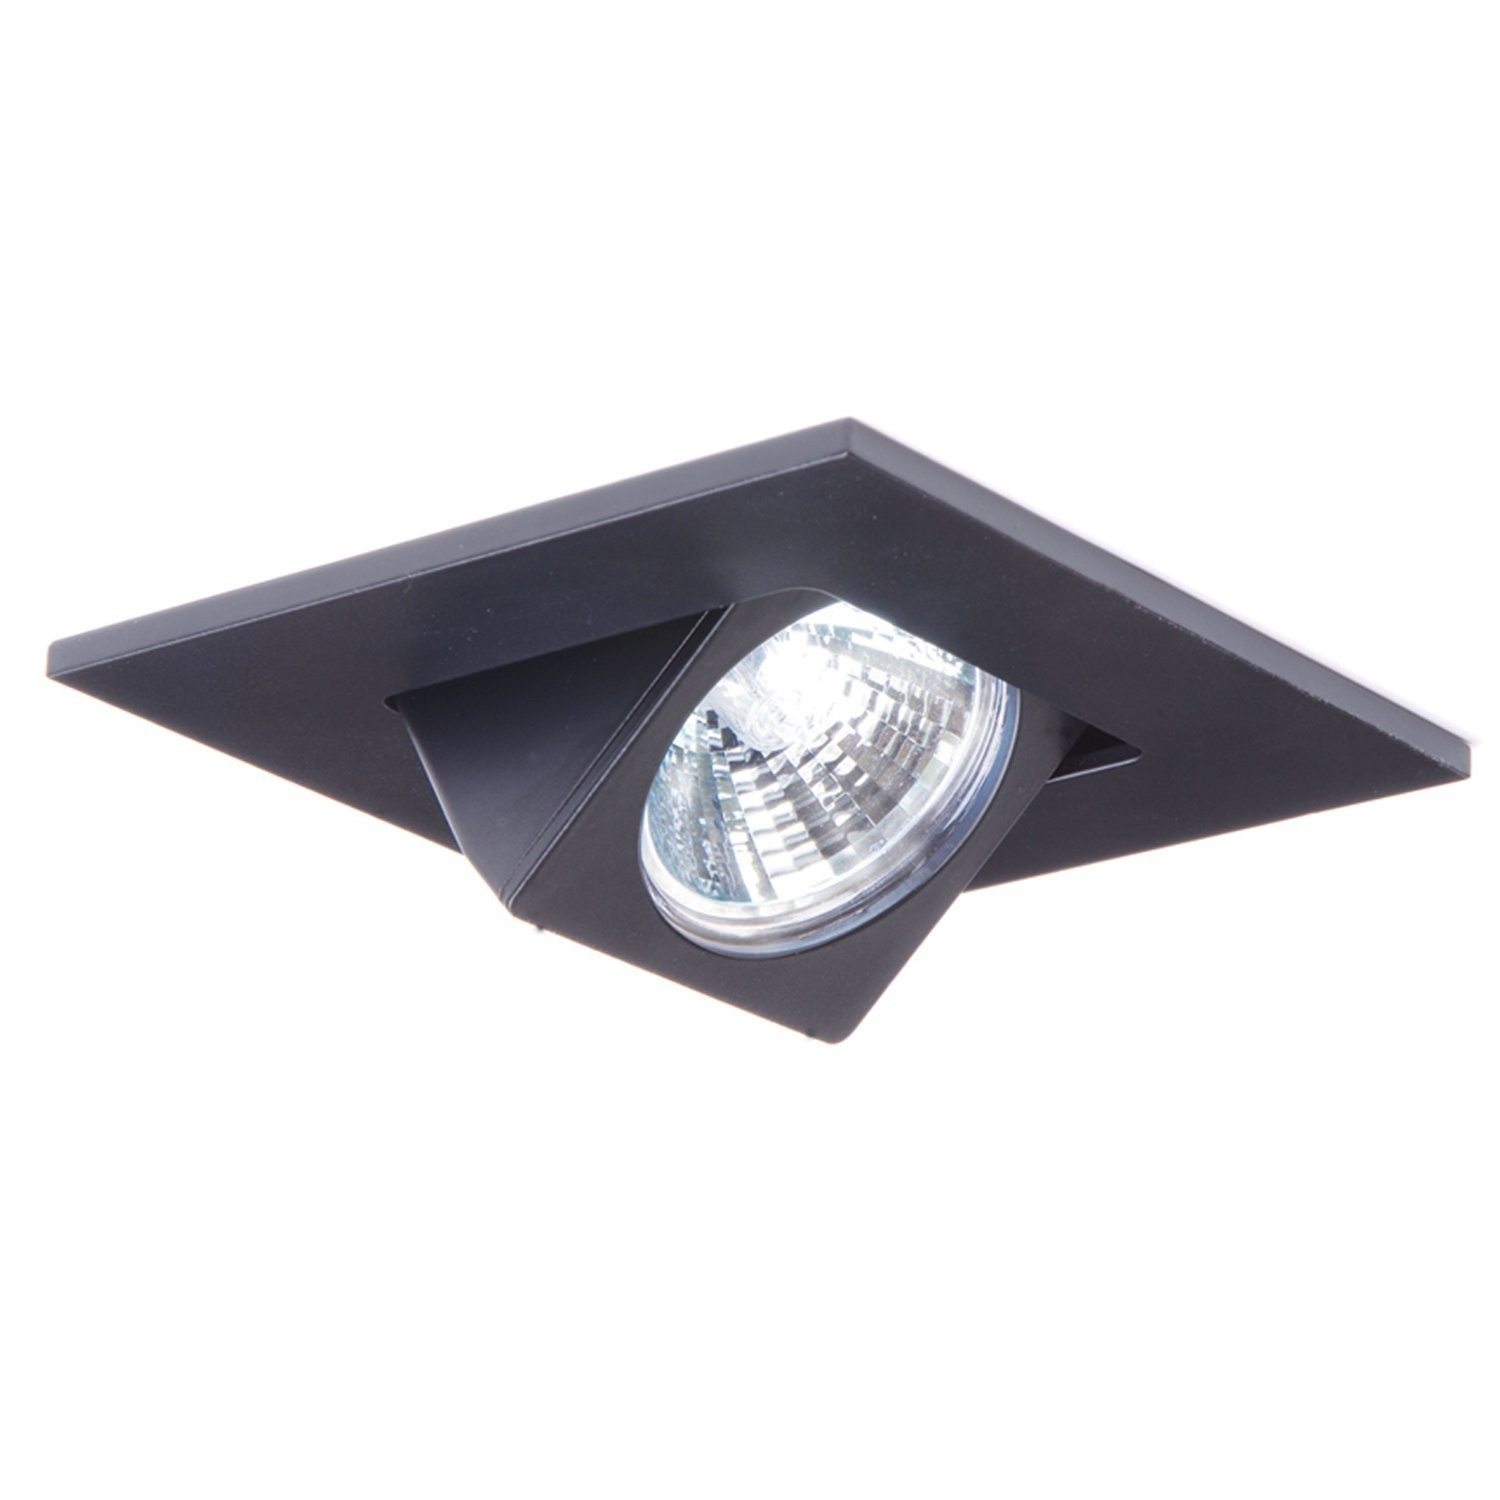 halo lighting. halo 3013bk recessed lighting trim 3 a